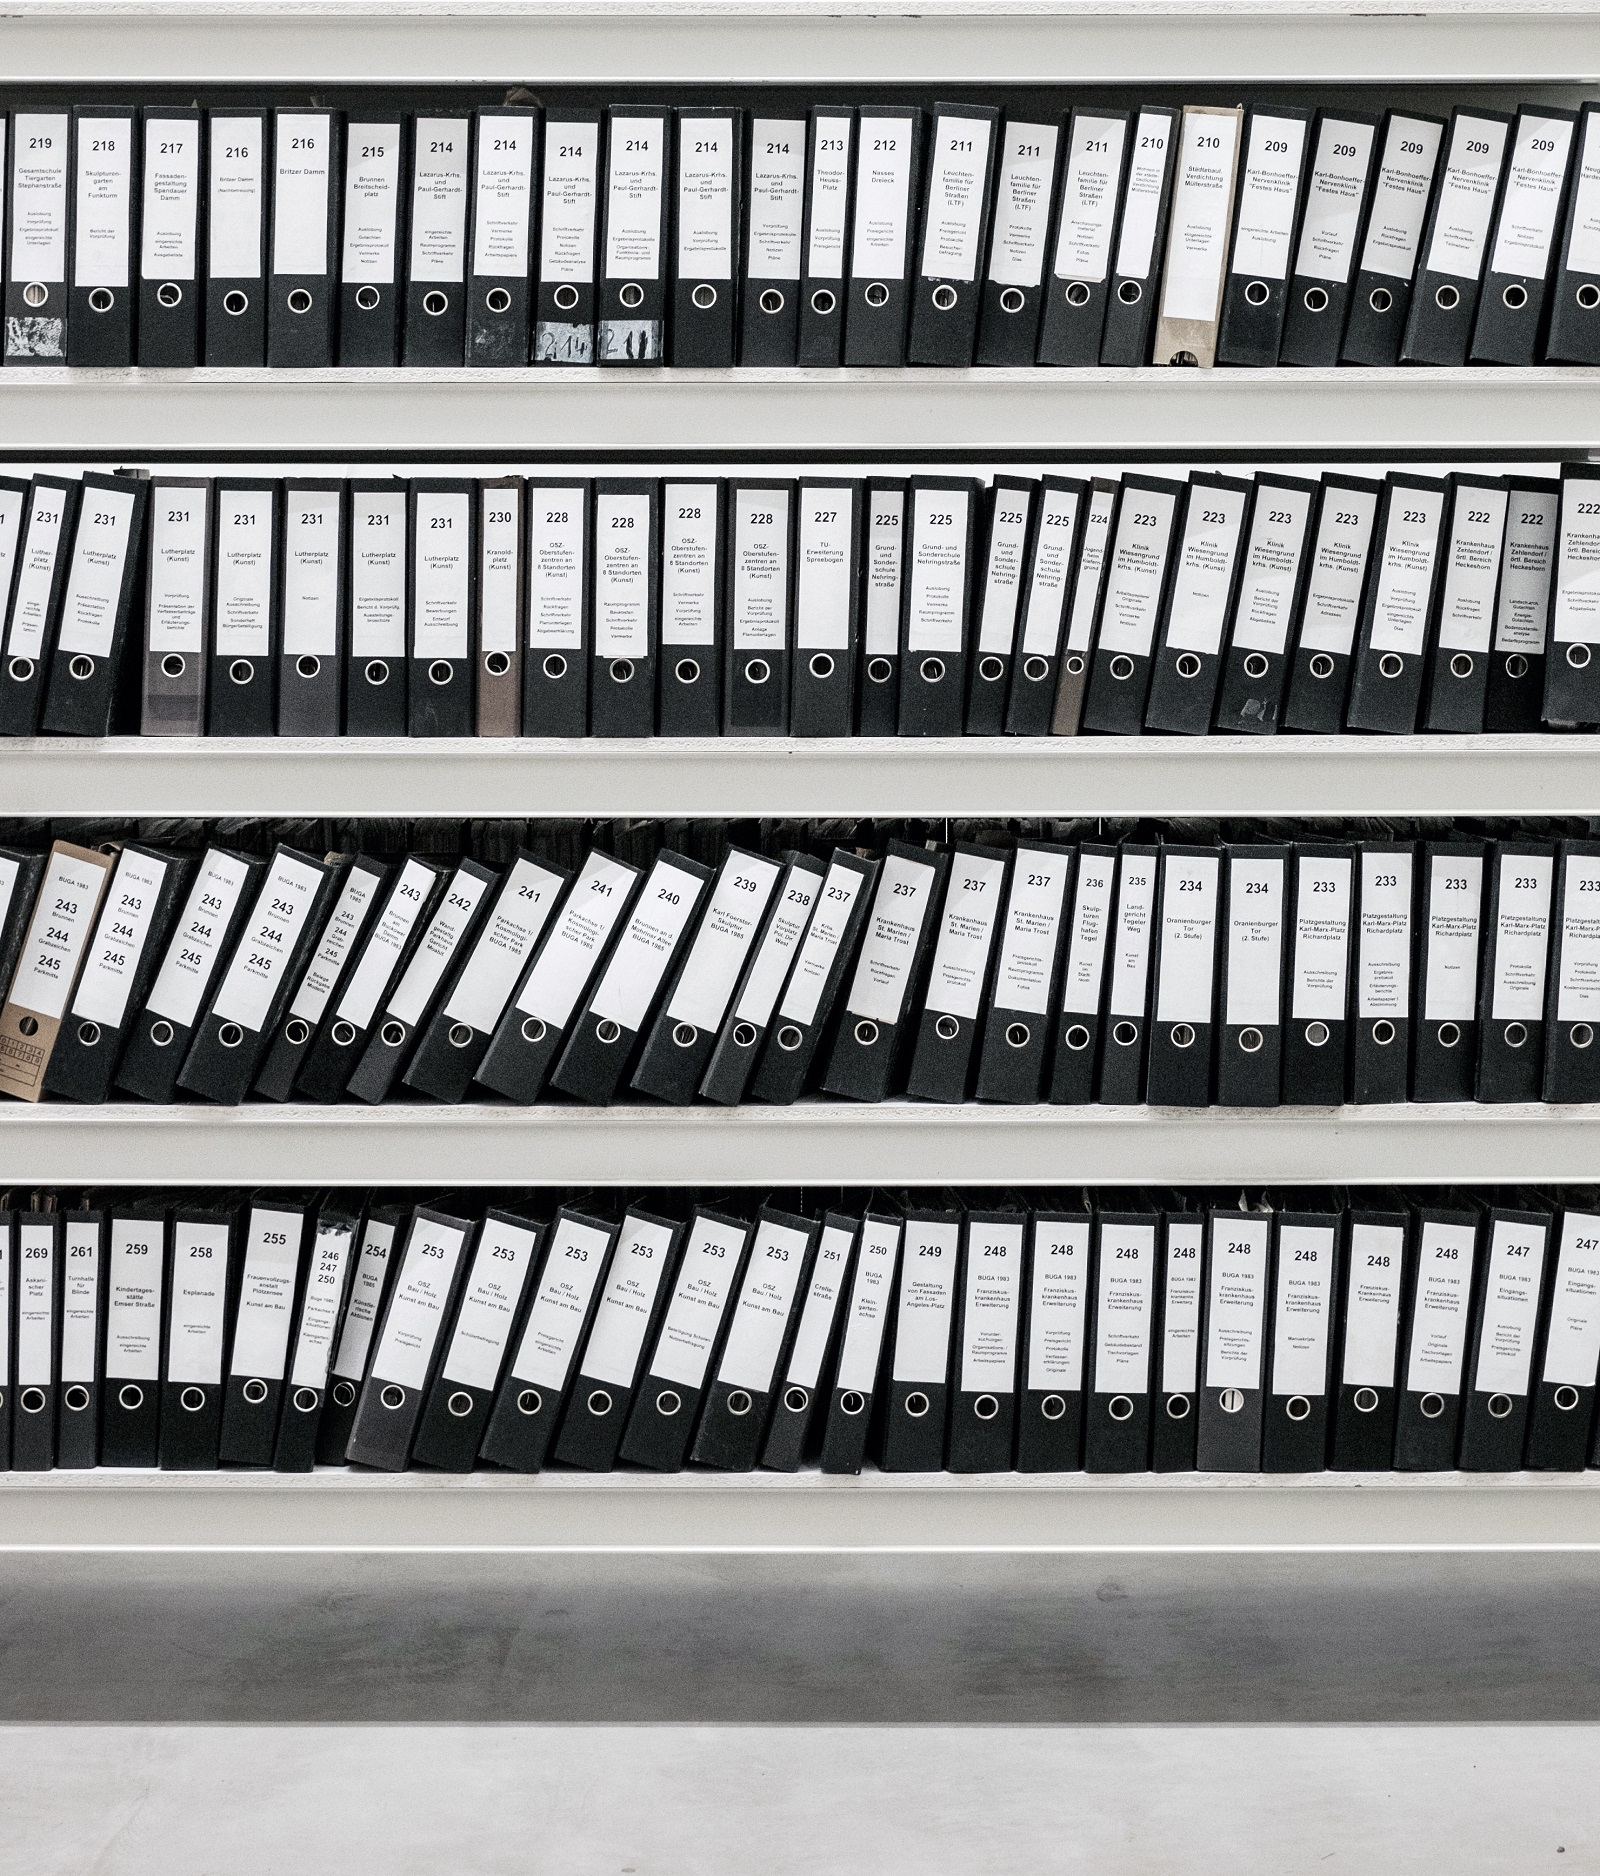 A photo of rows of black binders representing document management